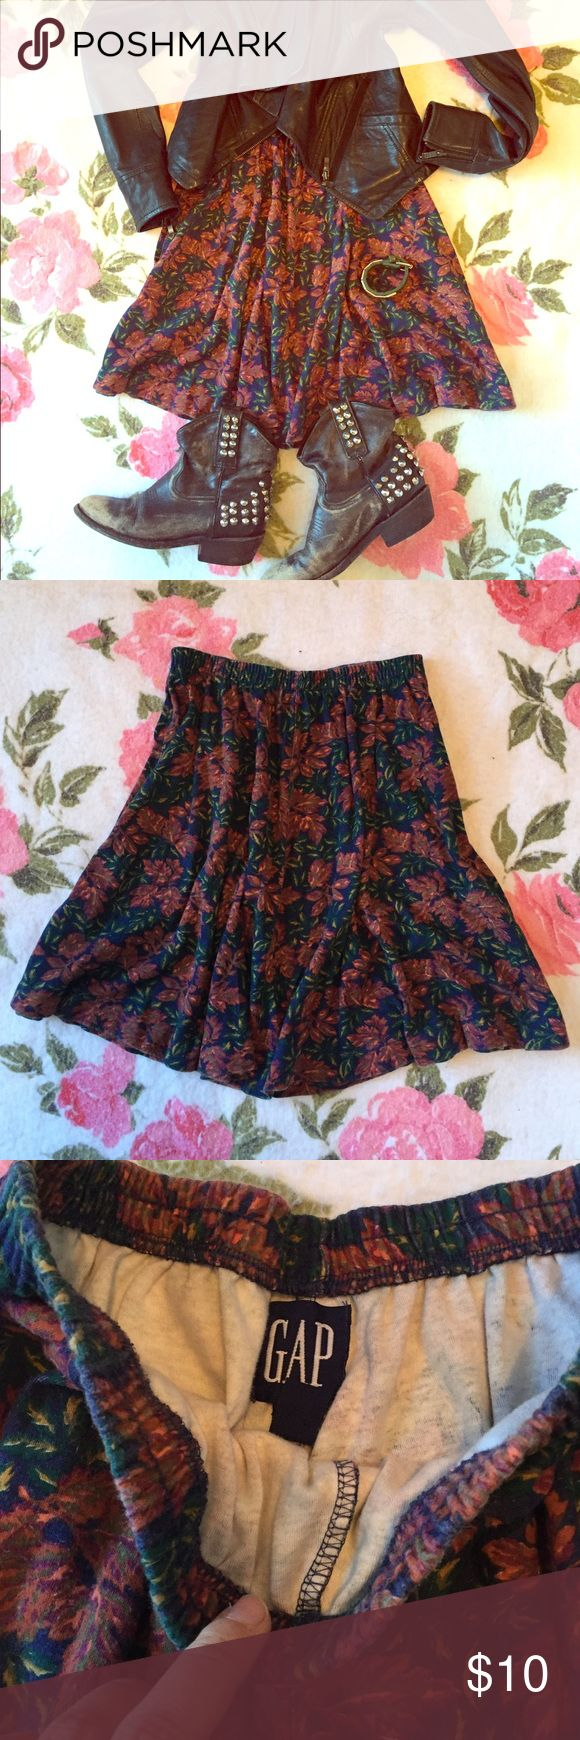 Vintage GAP skirt M Fun little gap skirt. Warm fall colors, elastic bank. Normal vintage wear with a little fading old GAP label. GAP Skirts Mini